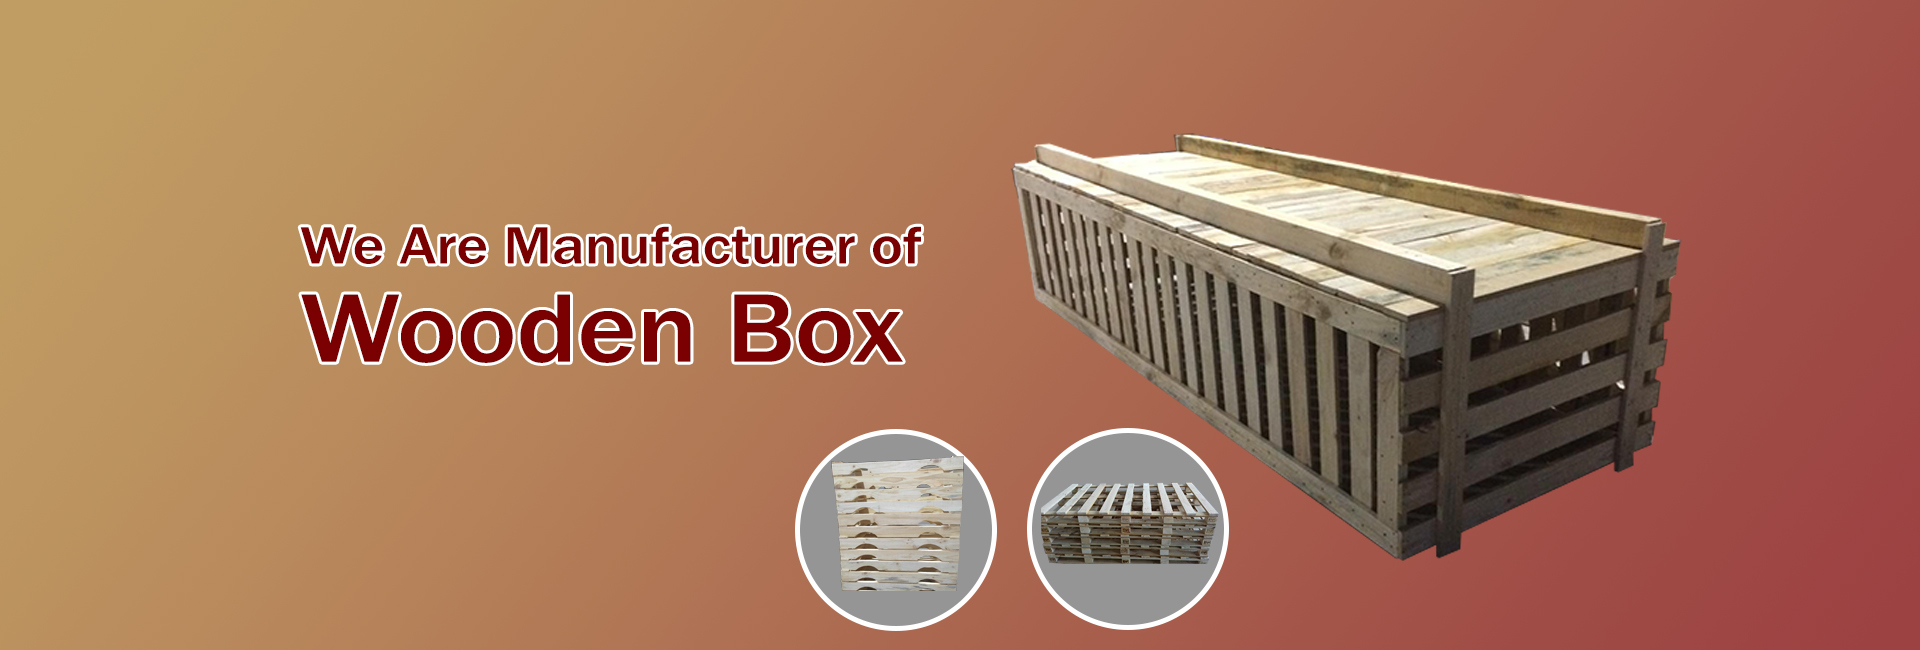 Wooden Box, Wooden Packaging Boxes